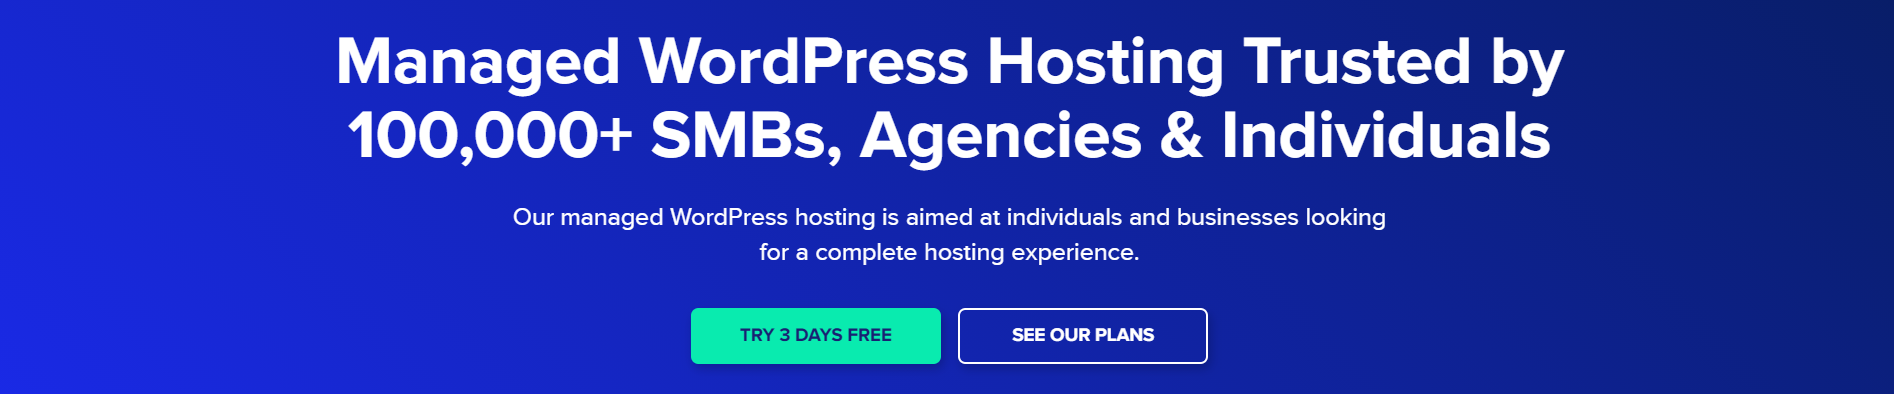 Cloudways-WordPress Hosting